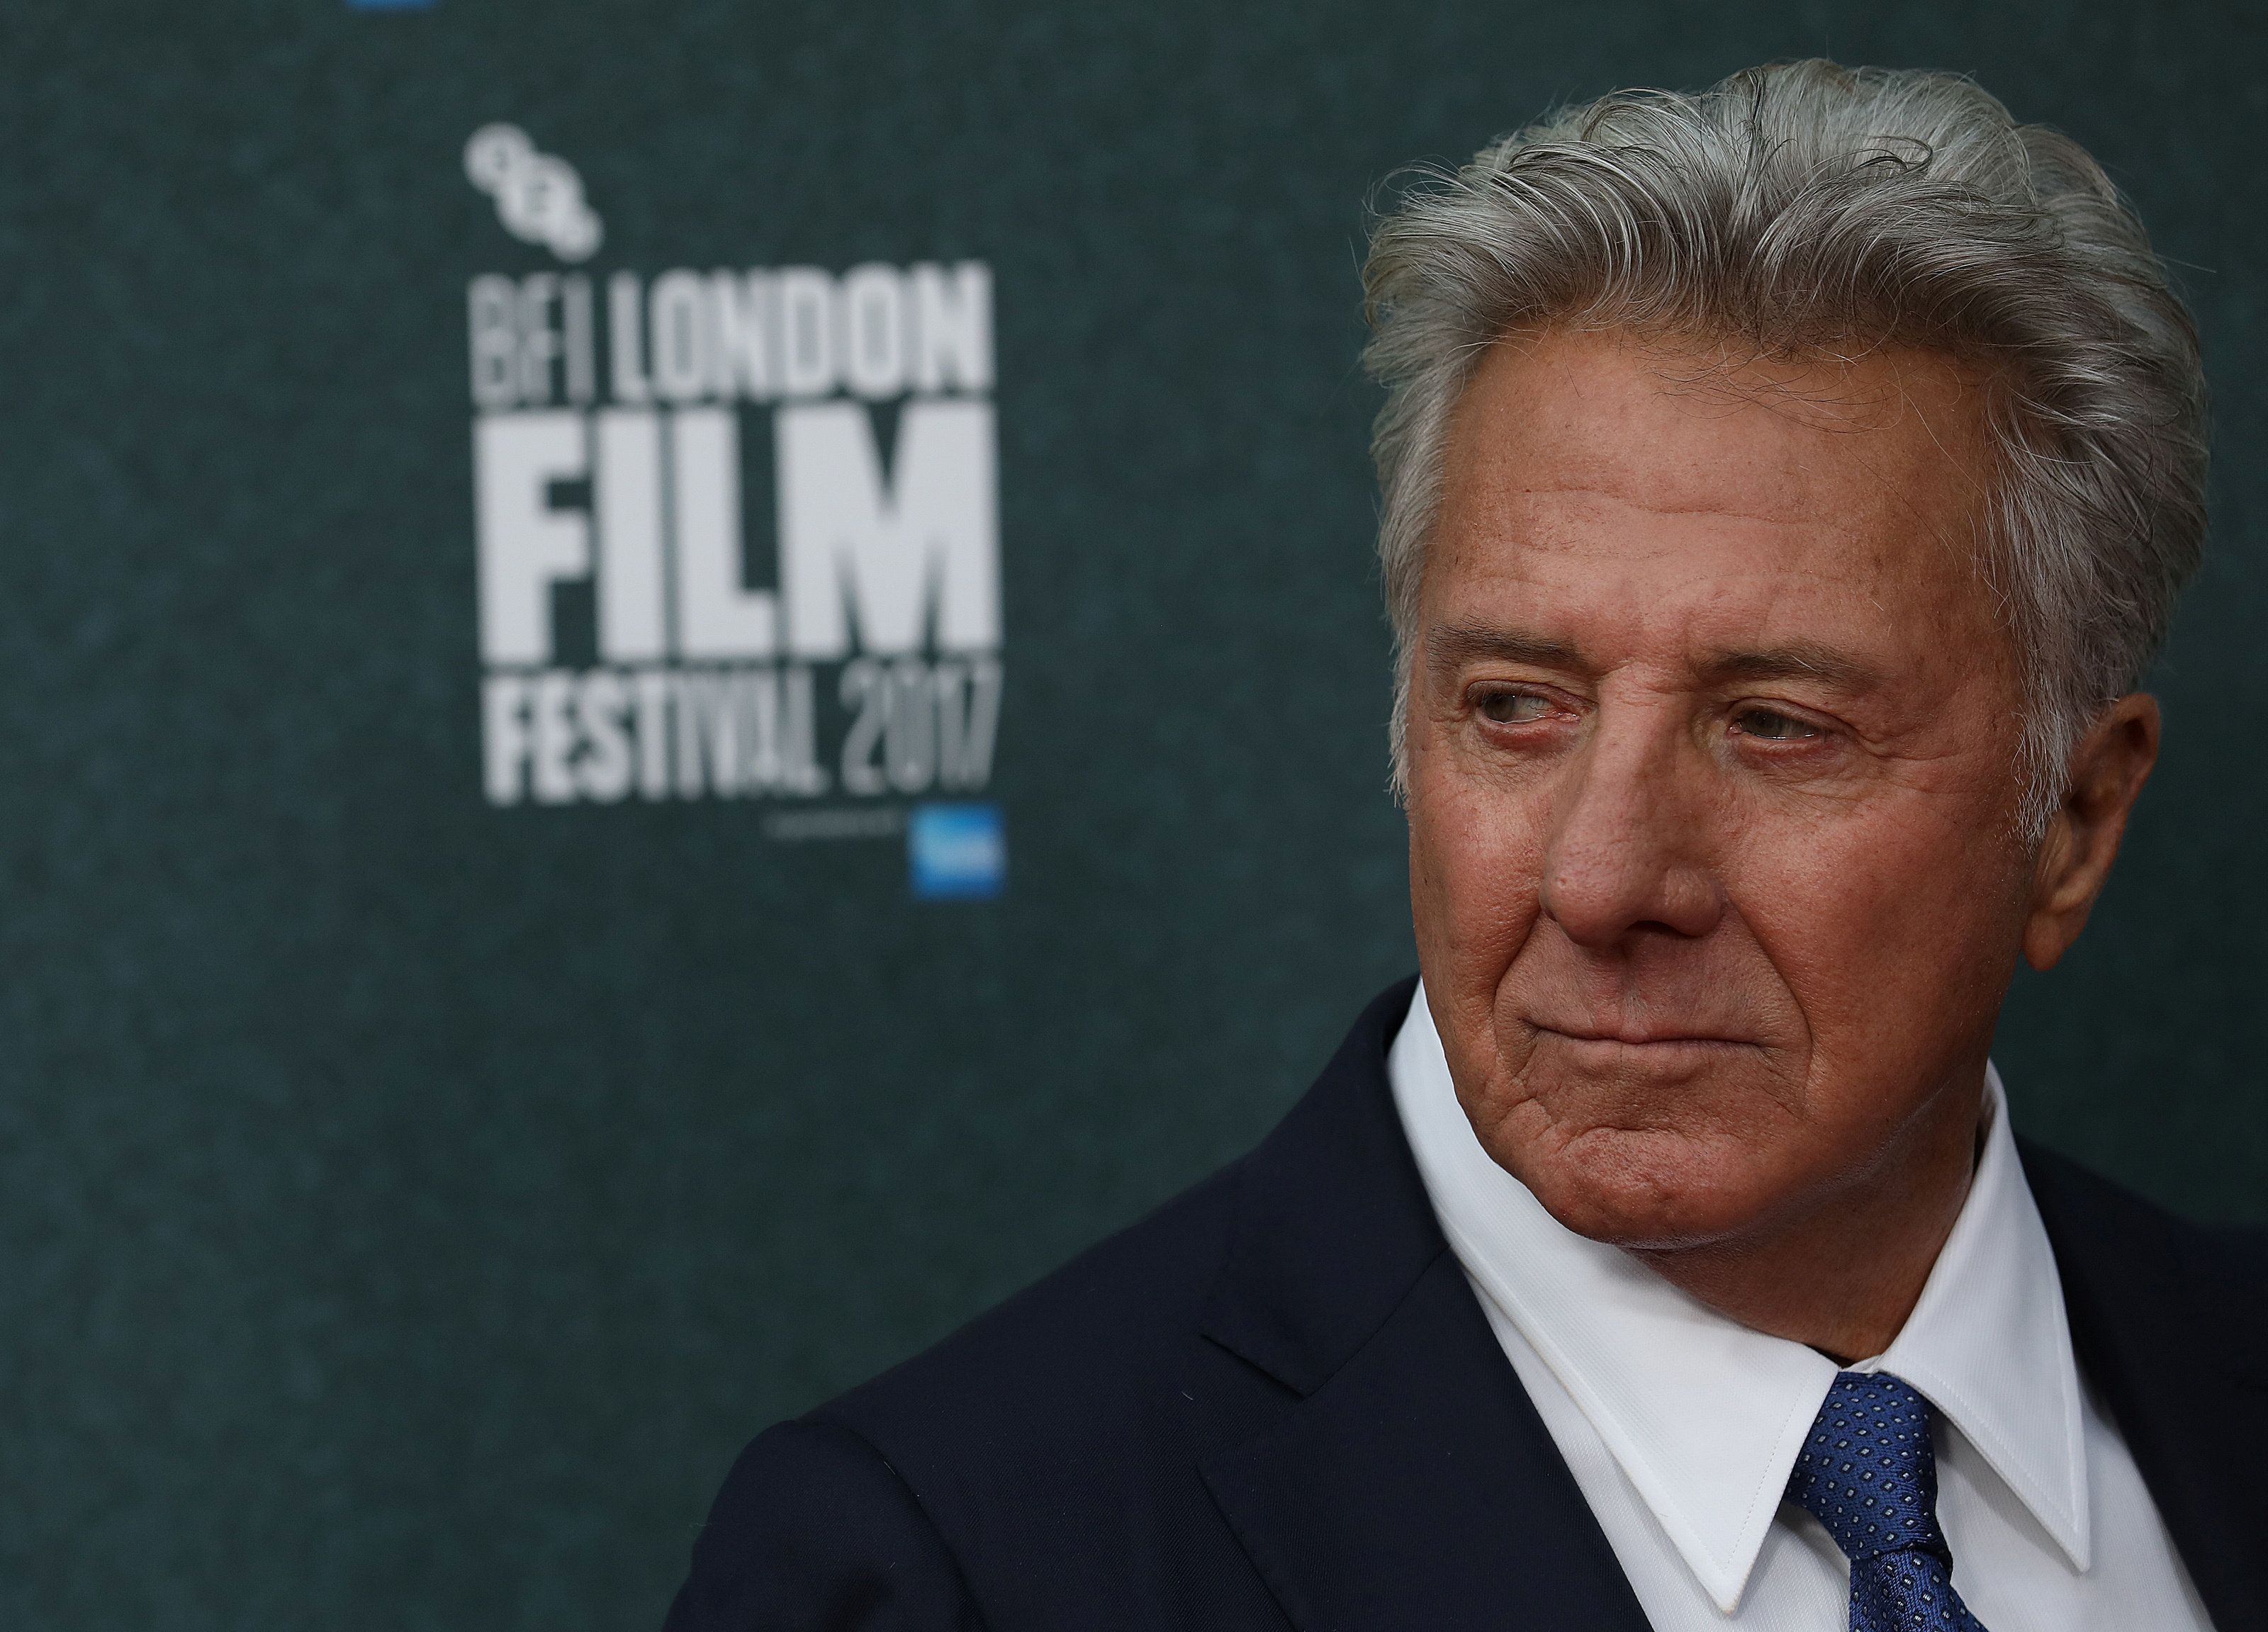 Dustin Hoffman arrives for the UK premiere of The Meyerowitz Stories during the British Film Festival in London earlier this month